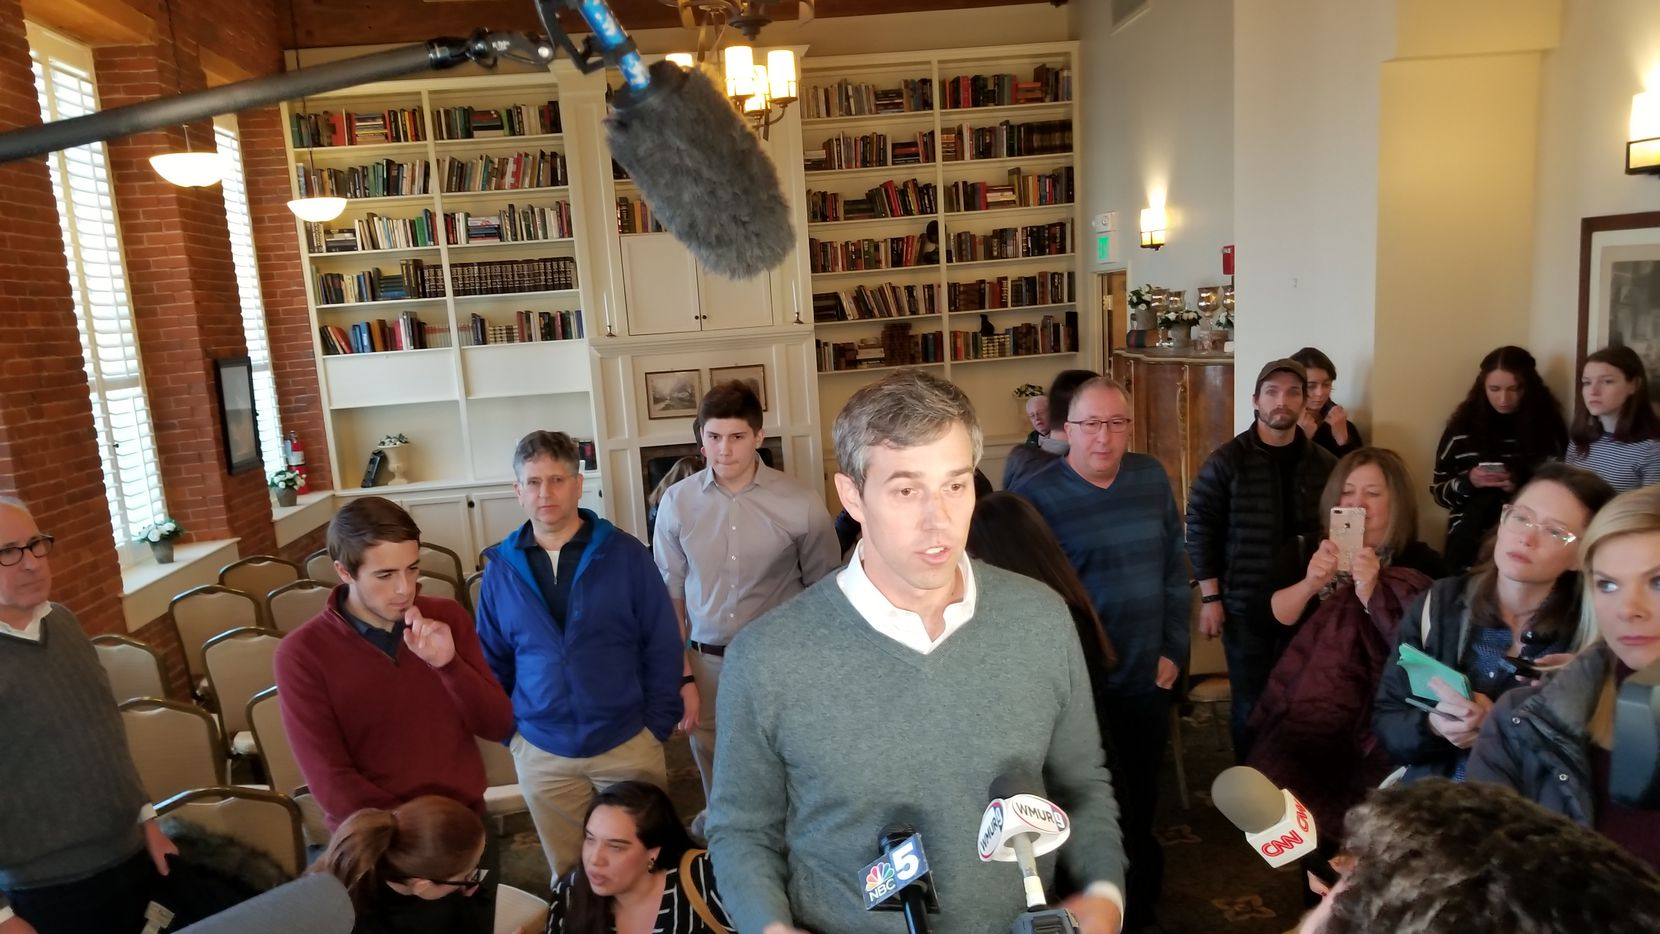 Beto O'Rourke speaks to reporters at The Common Man restaurant in Claremont, N.H., on March 20, 2019.